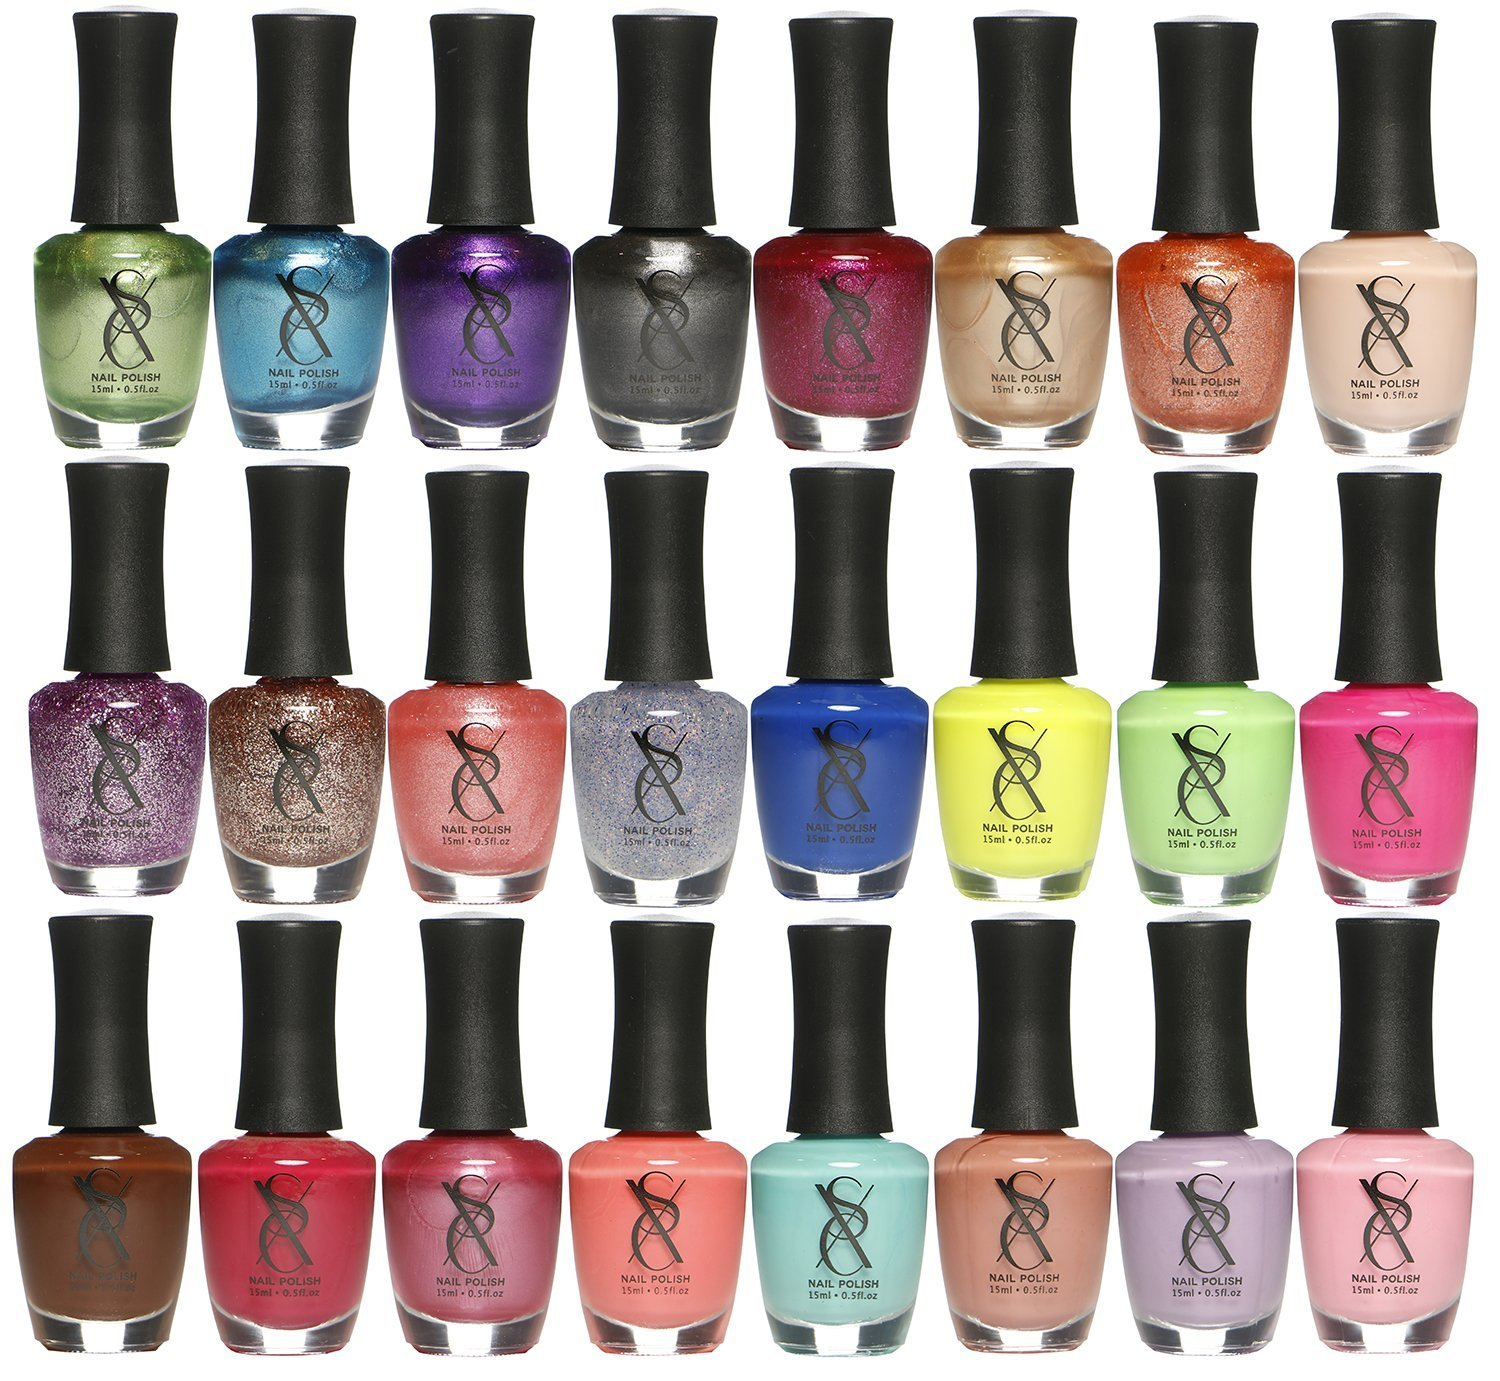 24 Collection Nail Lacquer Nail Polish, Professional Quality Quick Dry, Perfect Gift For Holiday